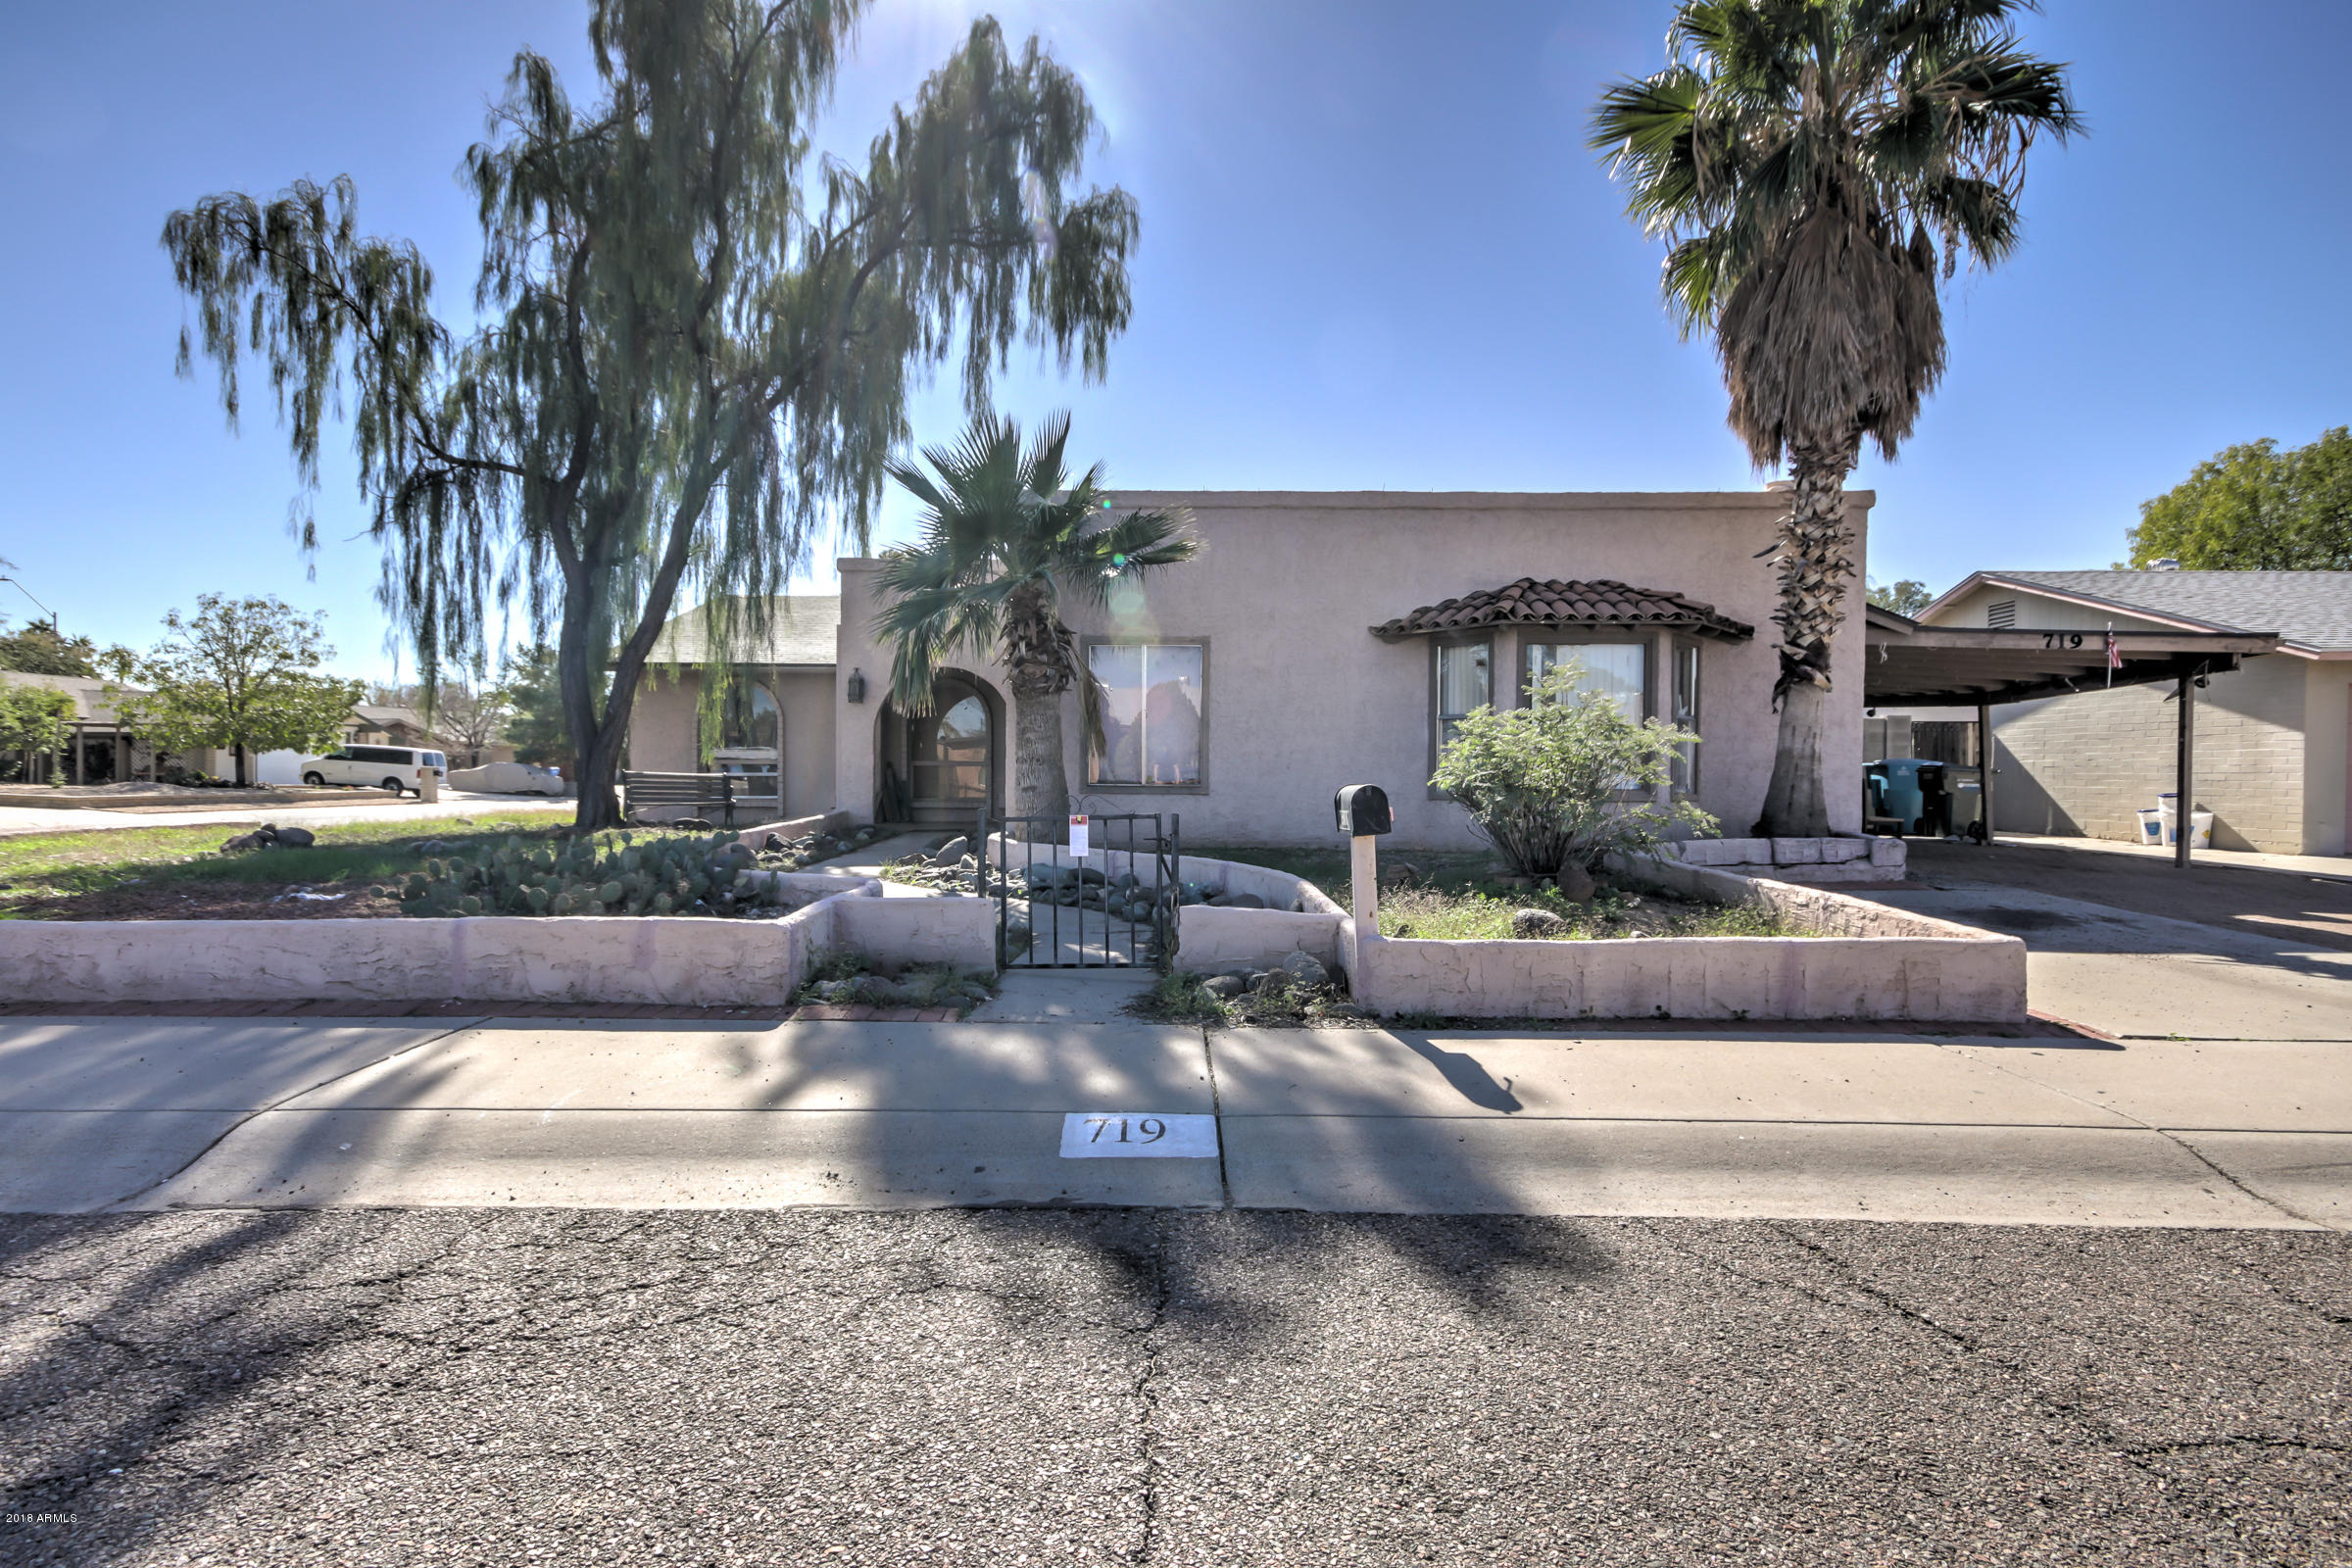 Photo of 719 W MORROW Drive, Phoenix, AZ 85027